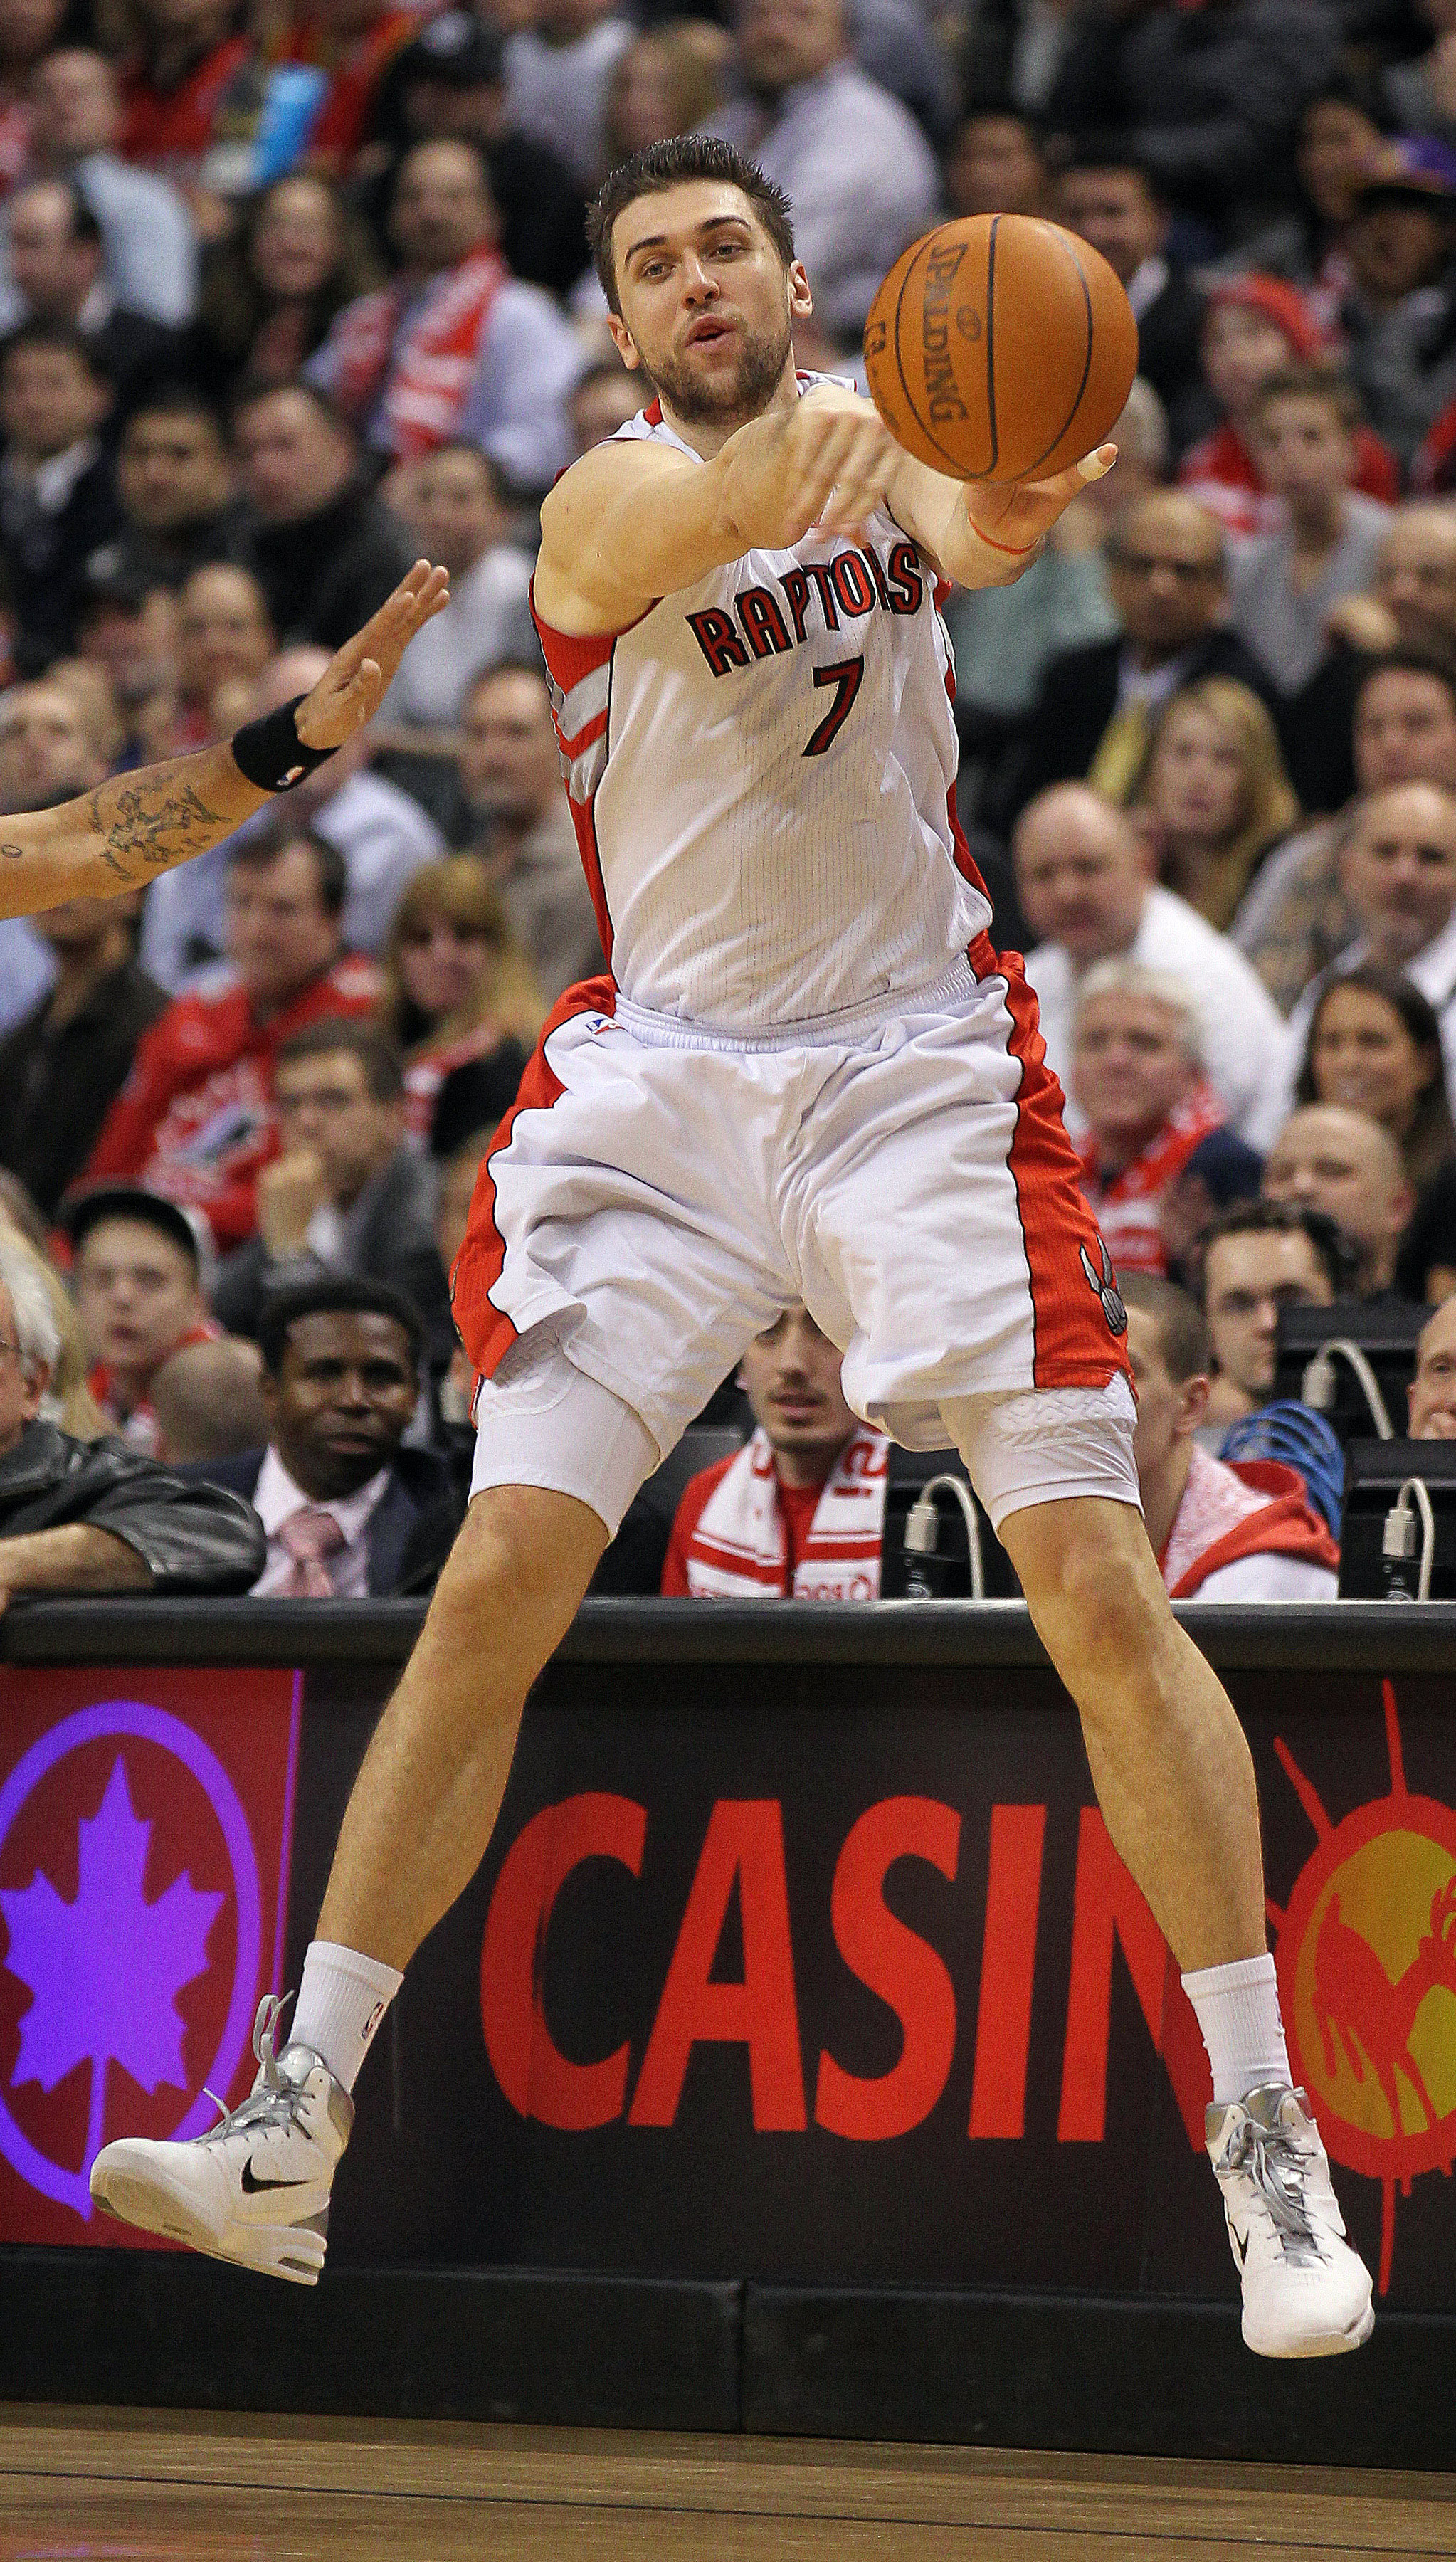 TORONTO, CANADA - FEBRUARY 16:  Andrea Bargnani #7 of the Toronto Raptors fires a pass in a game against the Miami Heat on February 16, 2011 at the Air Canada Centre in Toronto, Canada. The Heat defeated the Raptors 103-95. (Photo by Claus Andersen/Getty